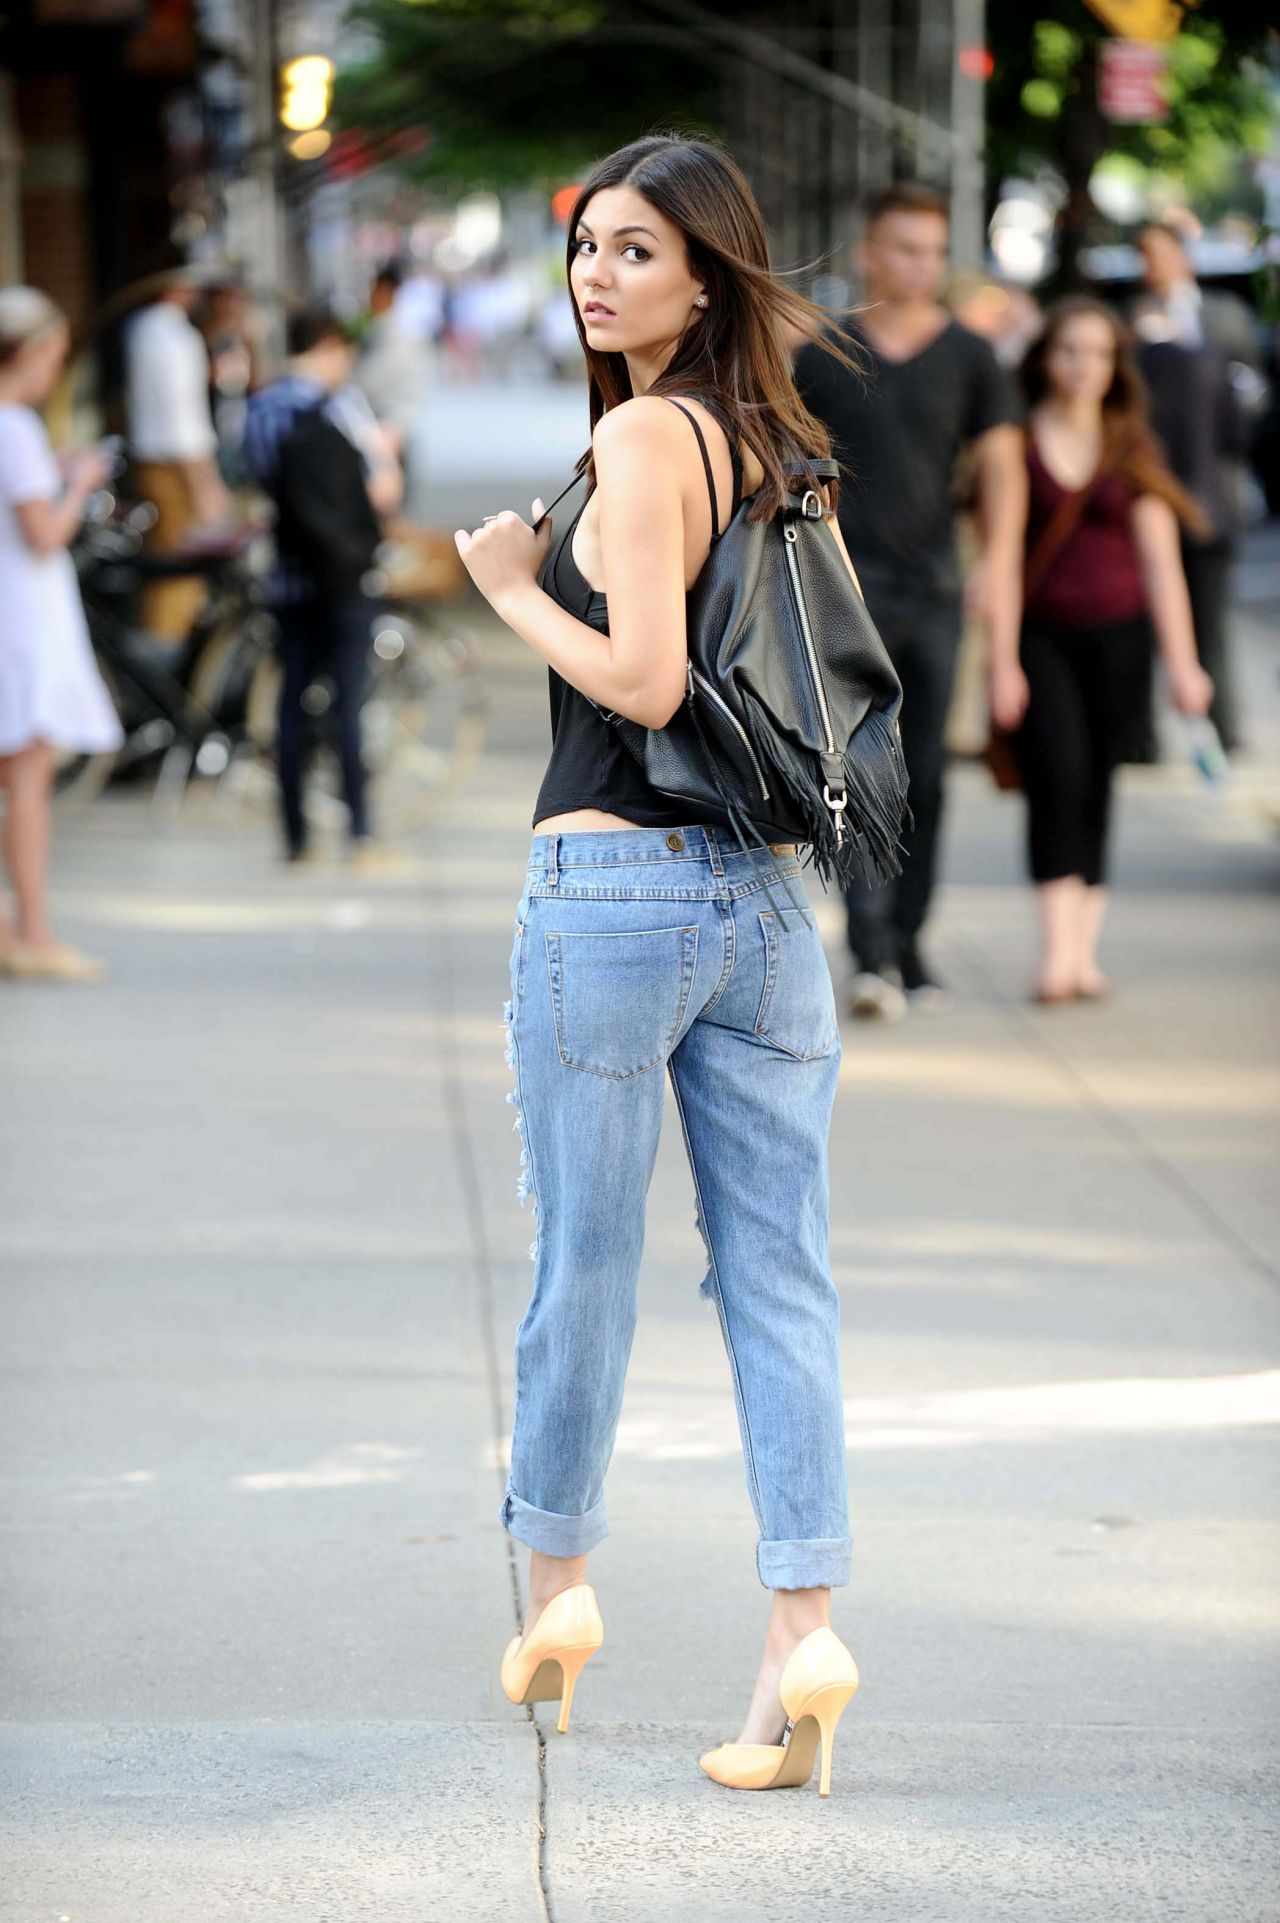 Victoria Justice In Ripped Jeans New York City June 2015